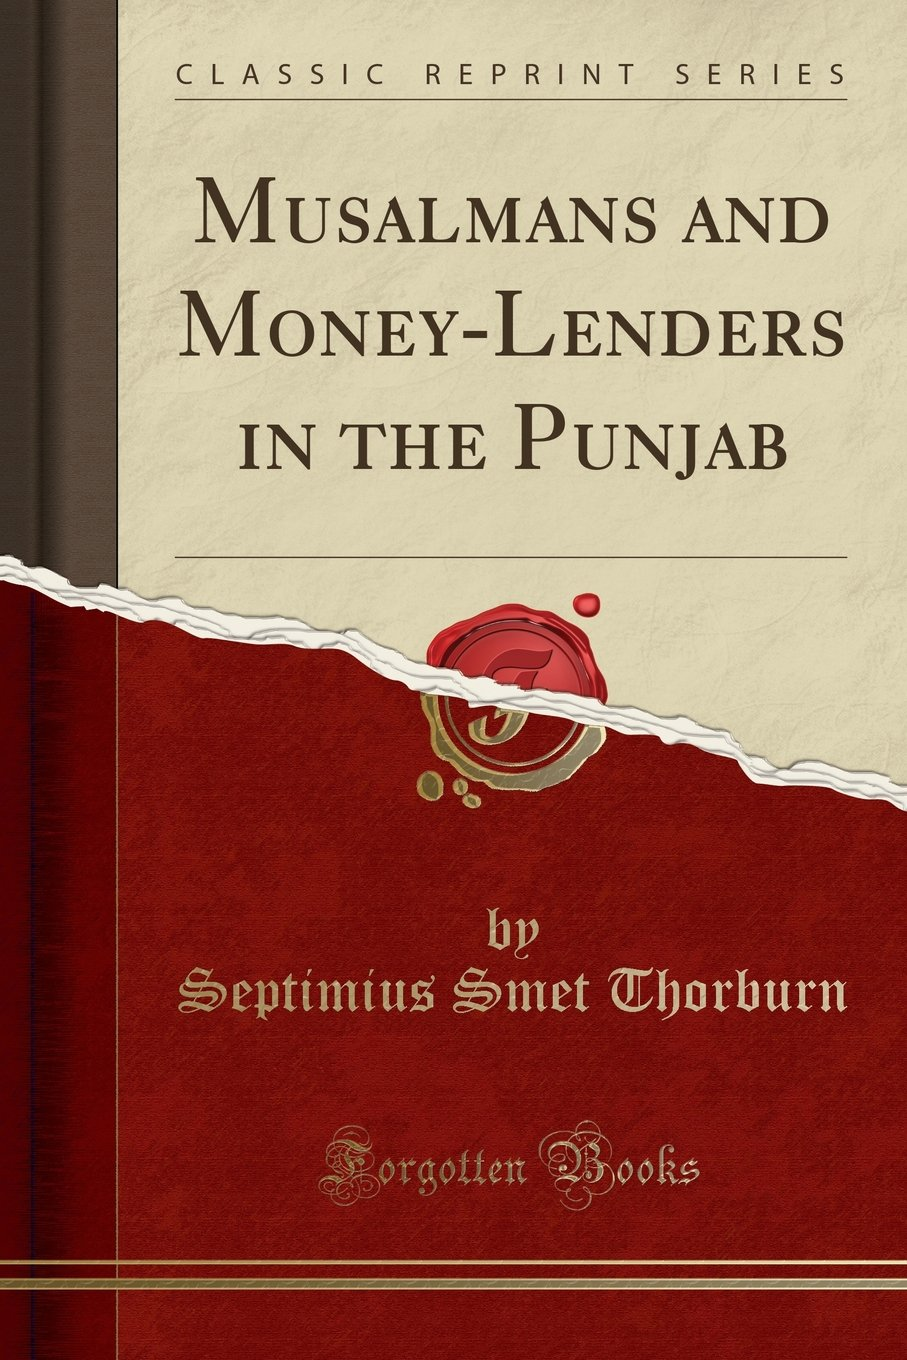 Musalmans and Money-Lenders in the Punjab (Classic Reprint) pdf